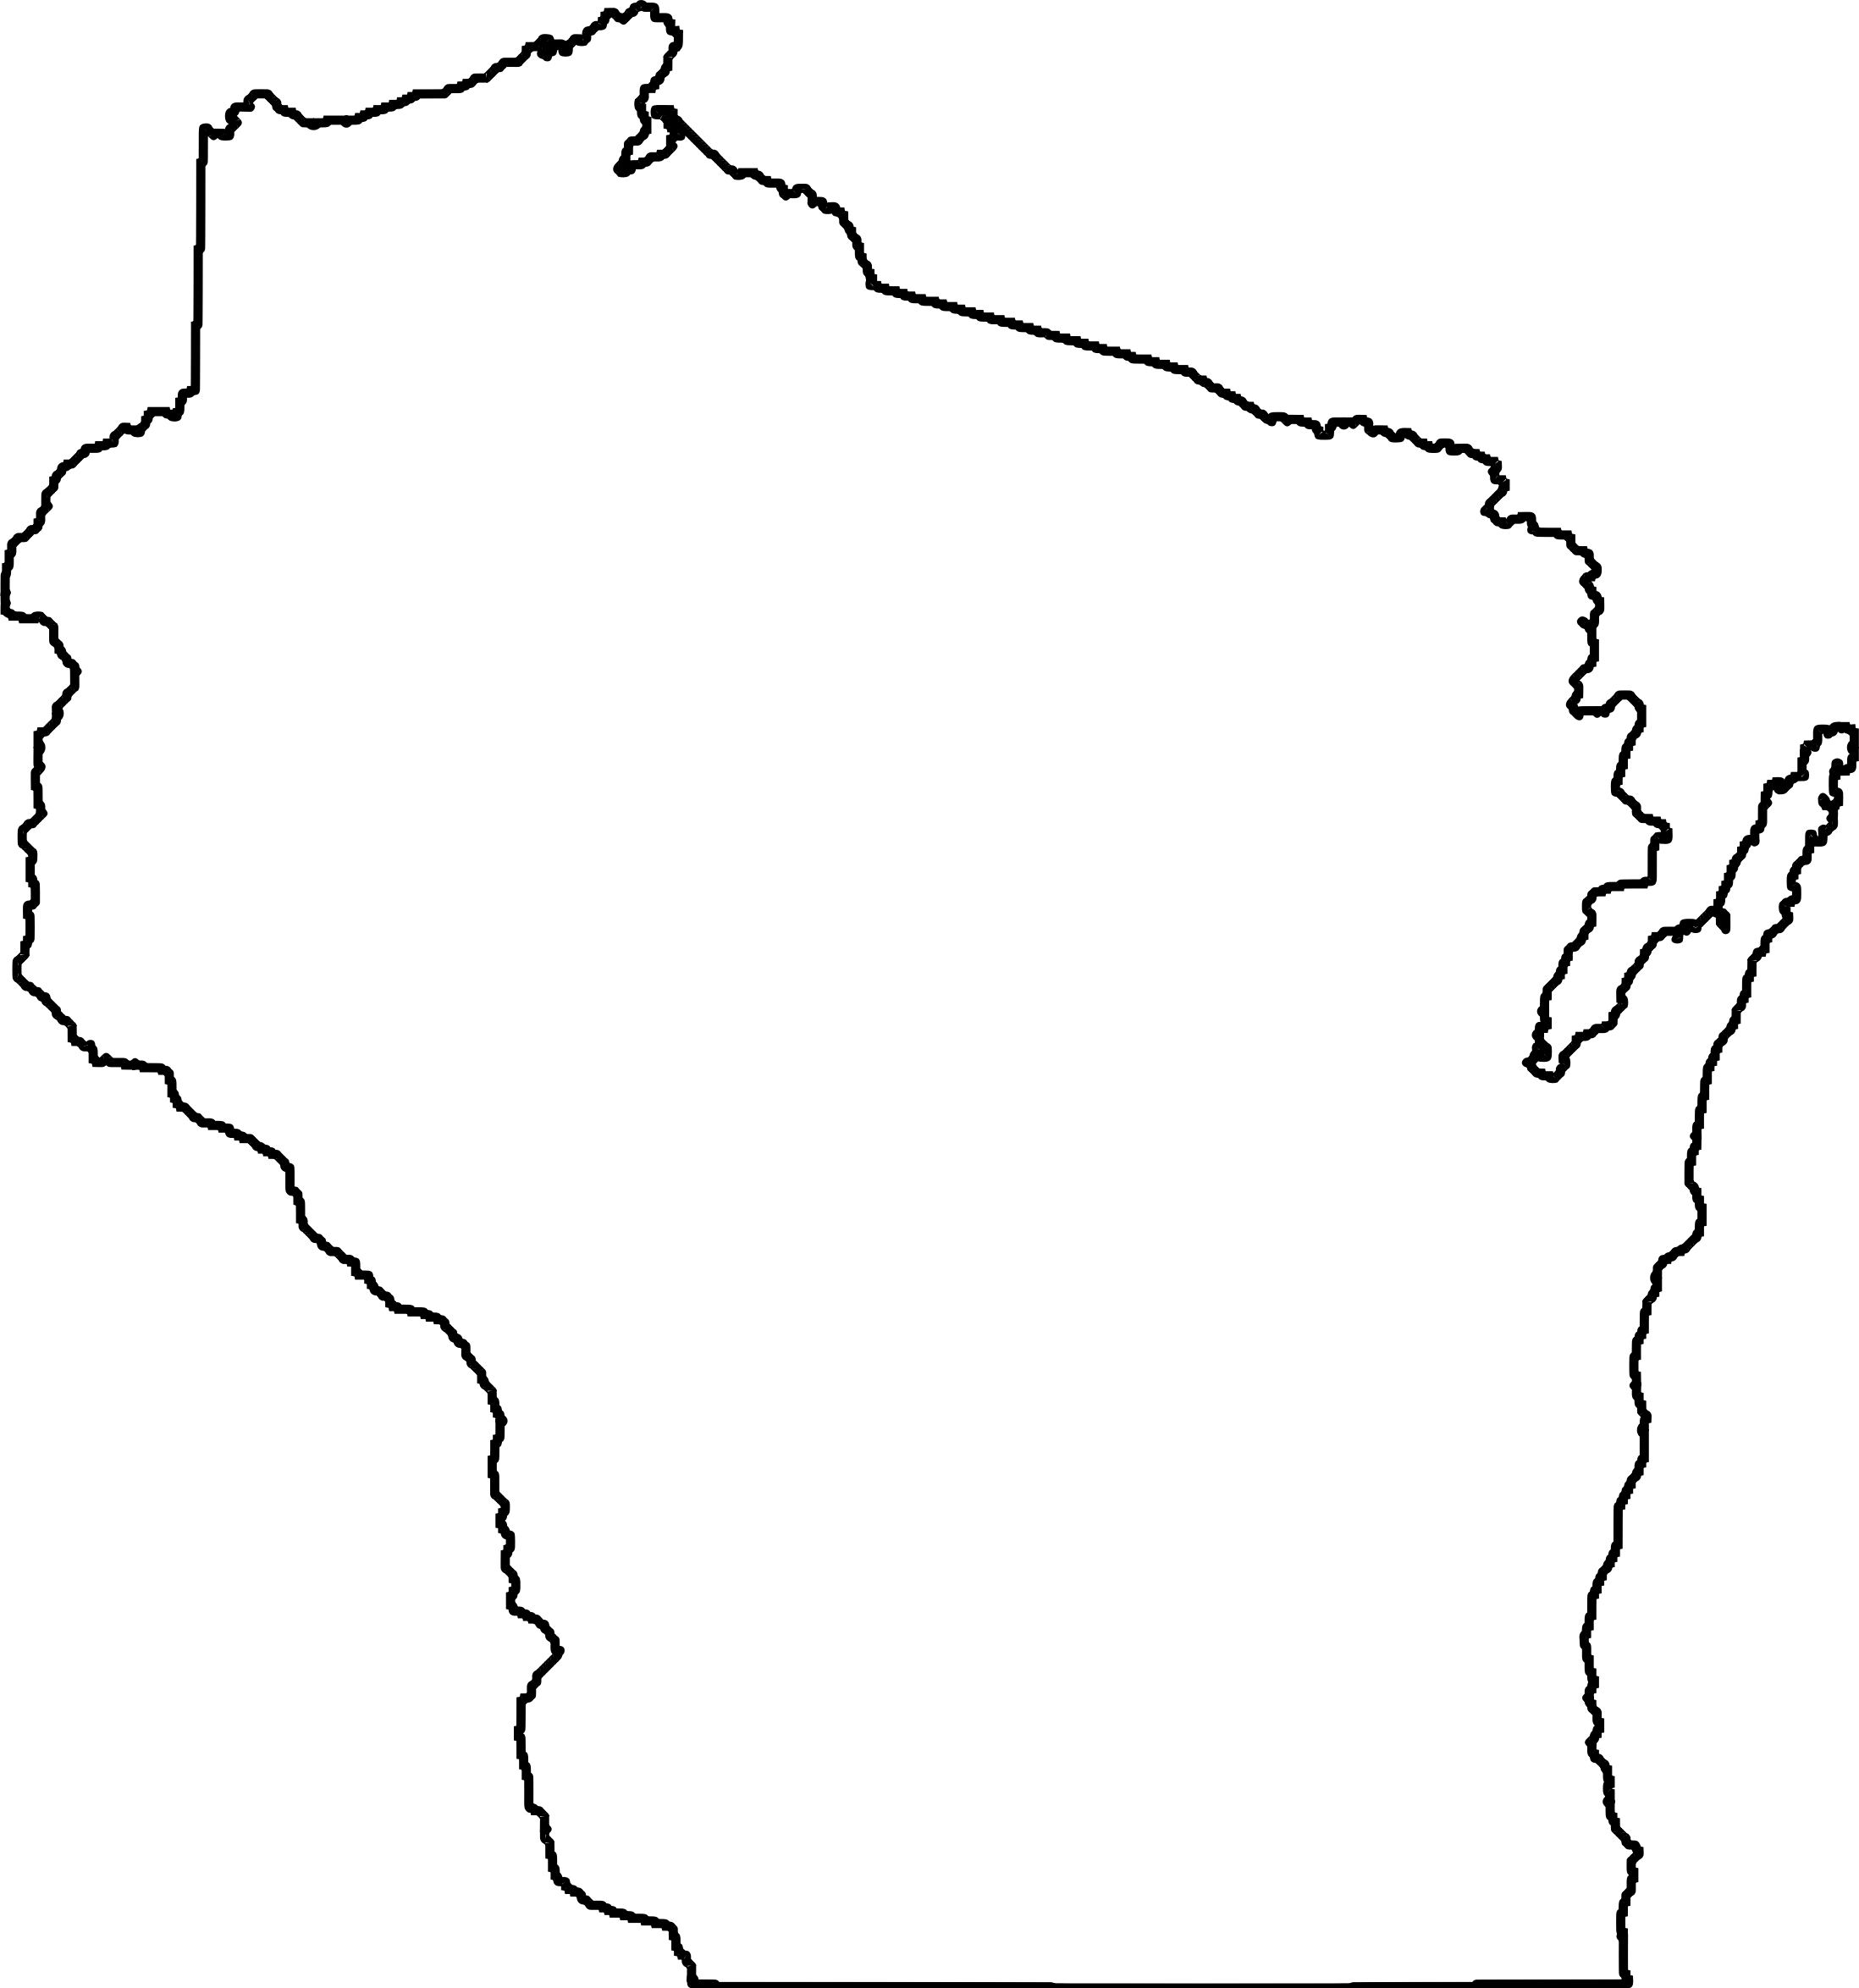 Wisconsin Map Outline Clipart